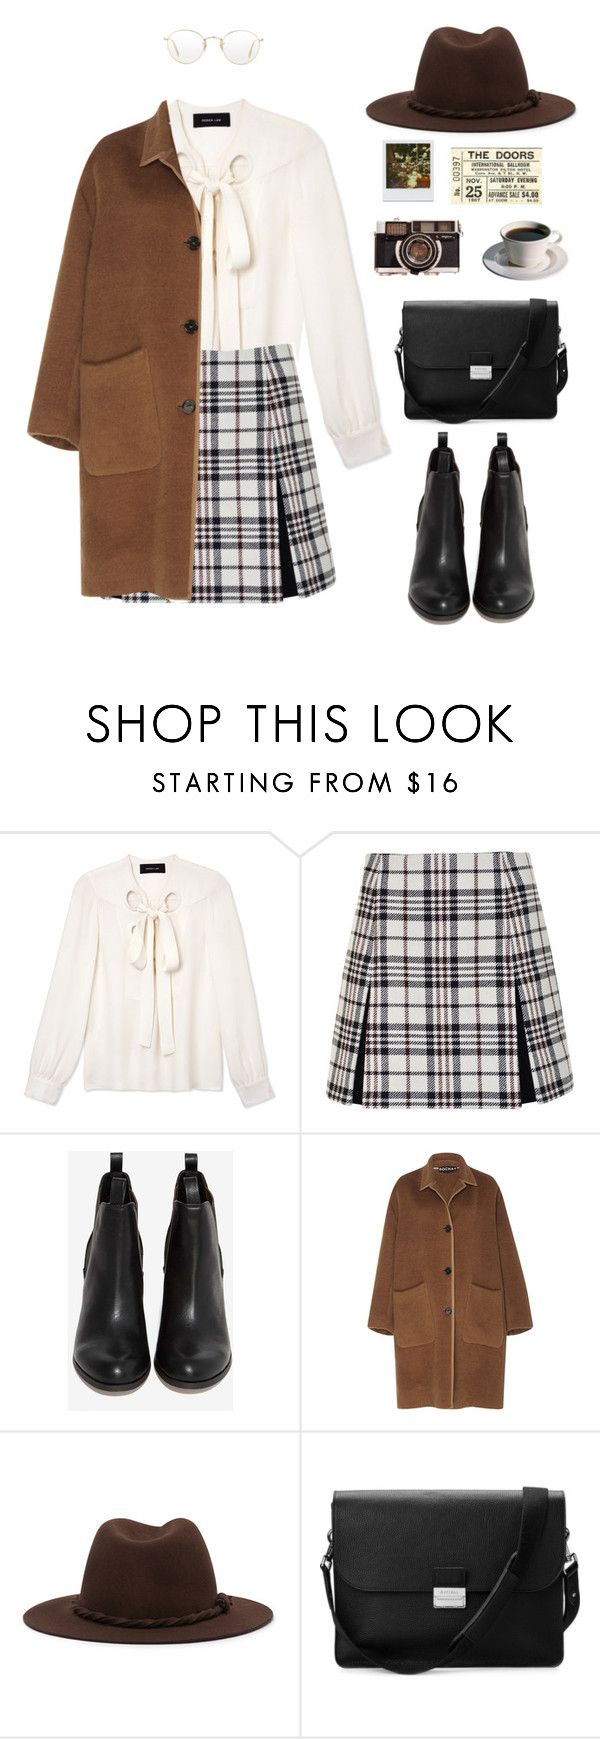 """""""Autumn"""" by annafranny ❤ liked on Polyvore featuring Derek Lam, Carven, Rochas, Forever 21, Aspinal of London, Oliver Peoples and 60s"""